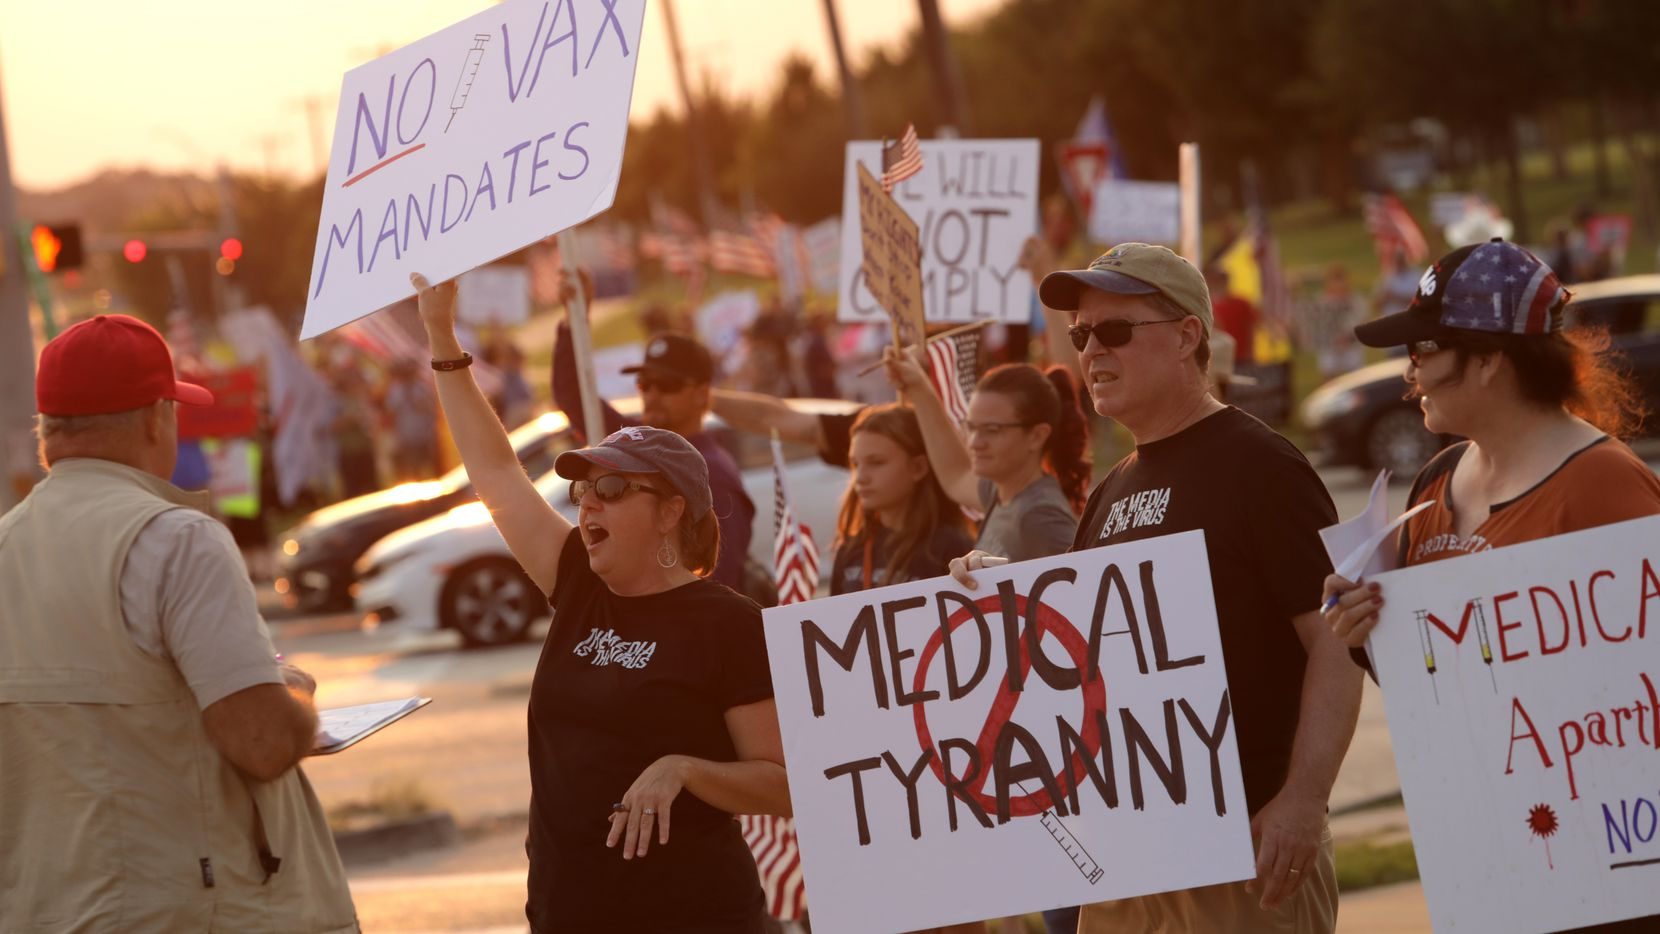 Dozens of demonstrators gathered along the road near the Baylor Scott and White hospital campus in McKinney to protest vaccine mandates on Friday, Sept. 10, 2021.